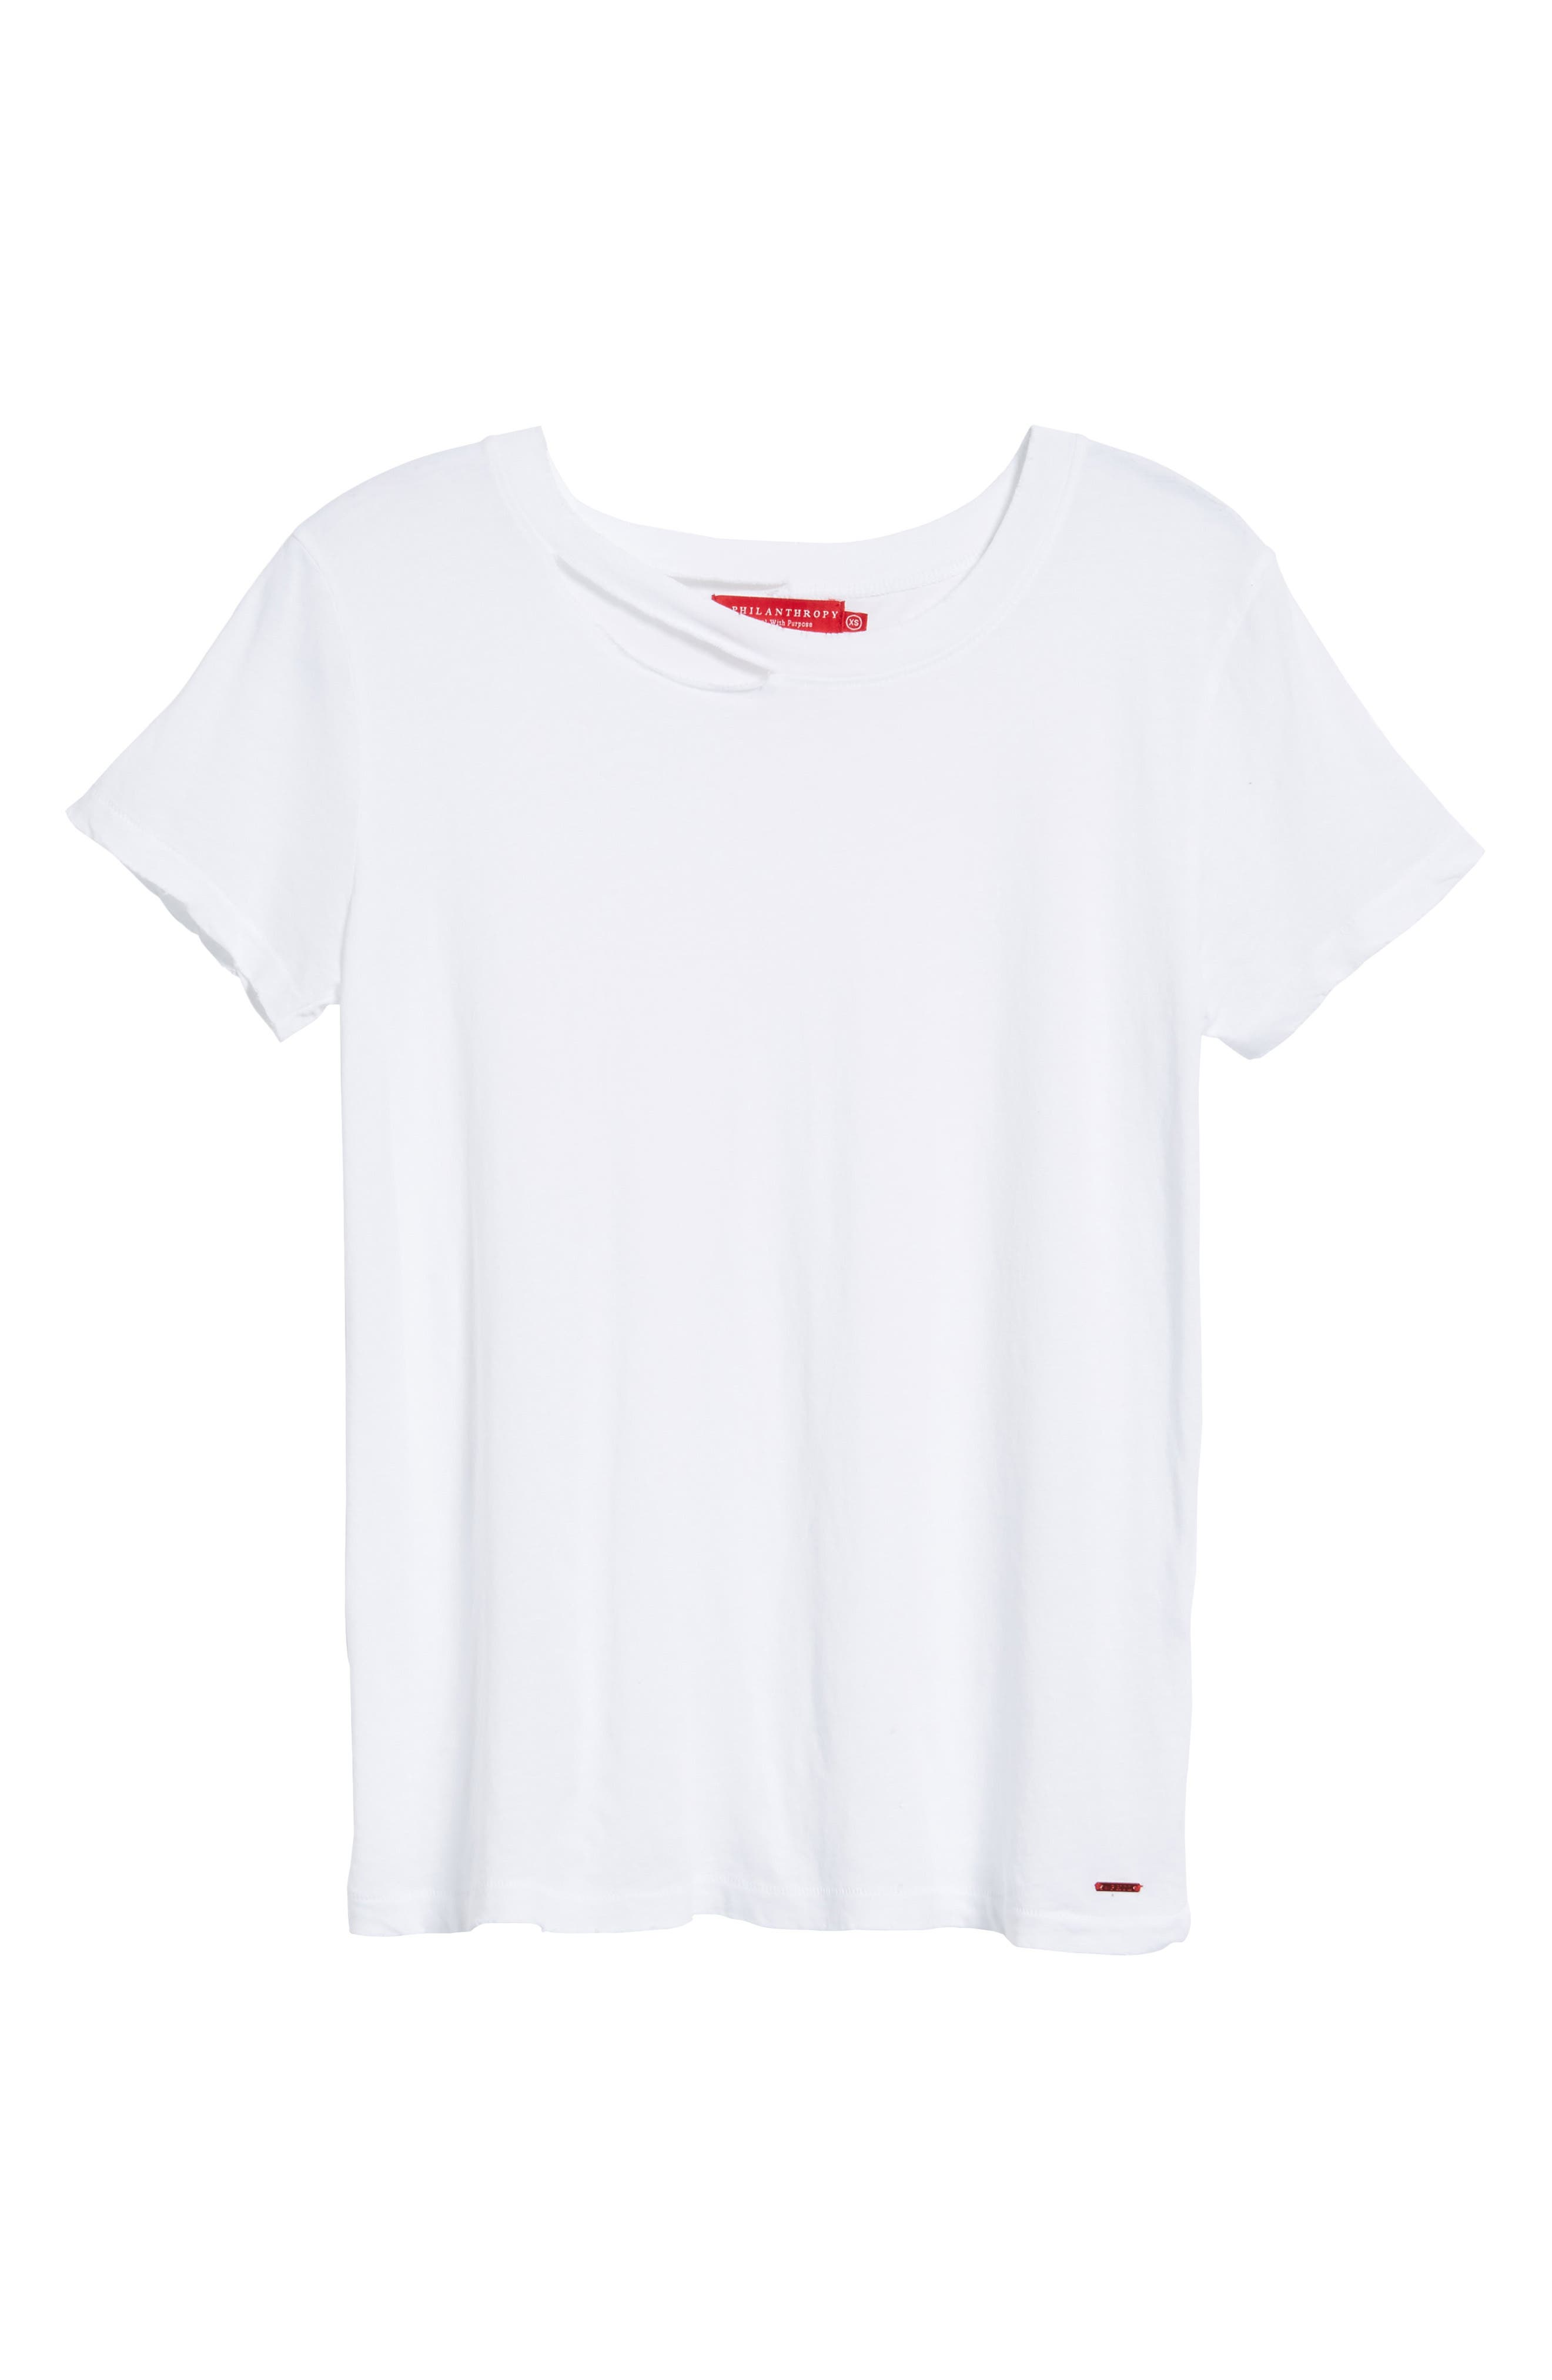 Harlow Distressed BFF Tee,                             Alternate thumbnail 6, color,                             100